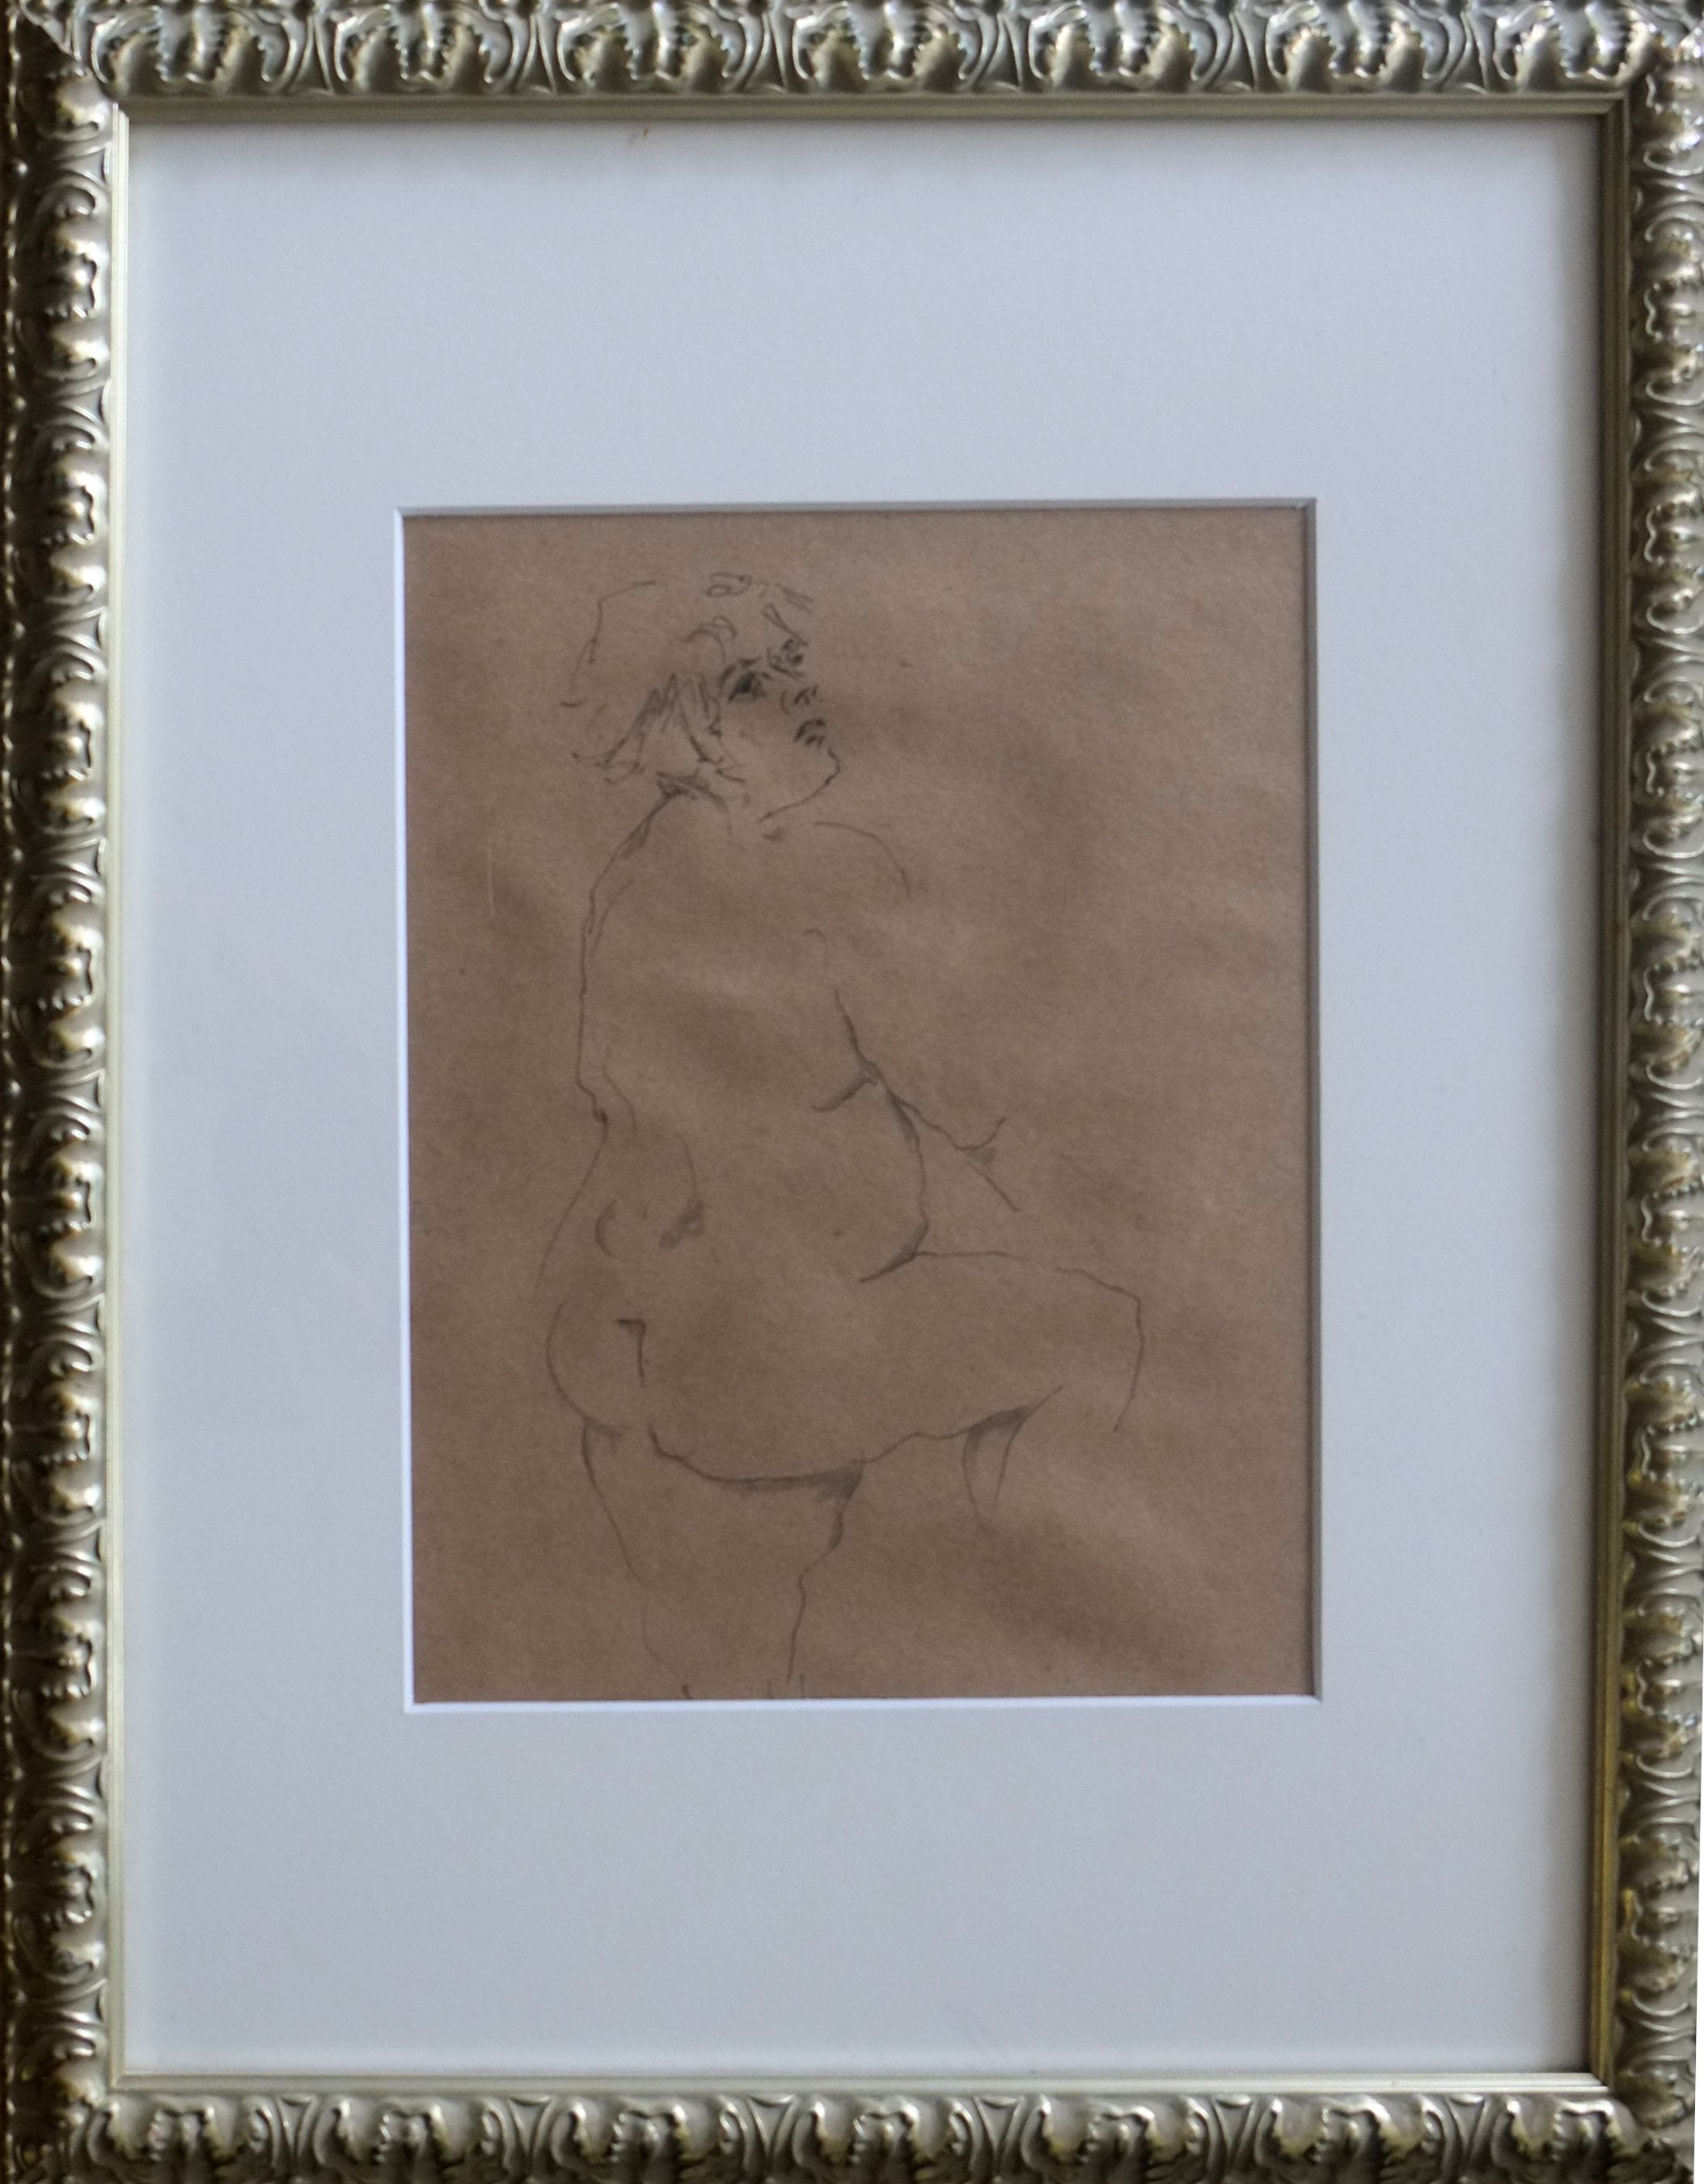 9 x 12 Original Ink Drawing, framed or unframed